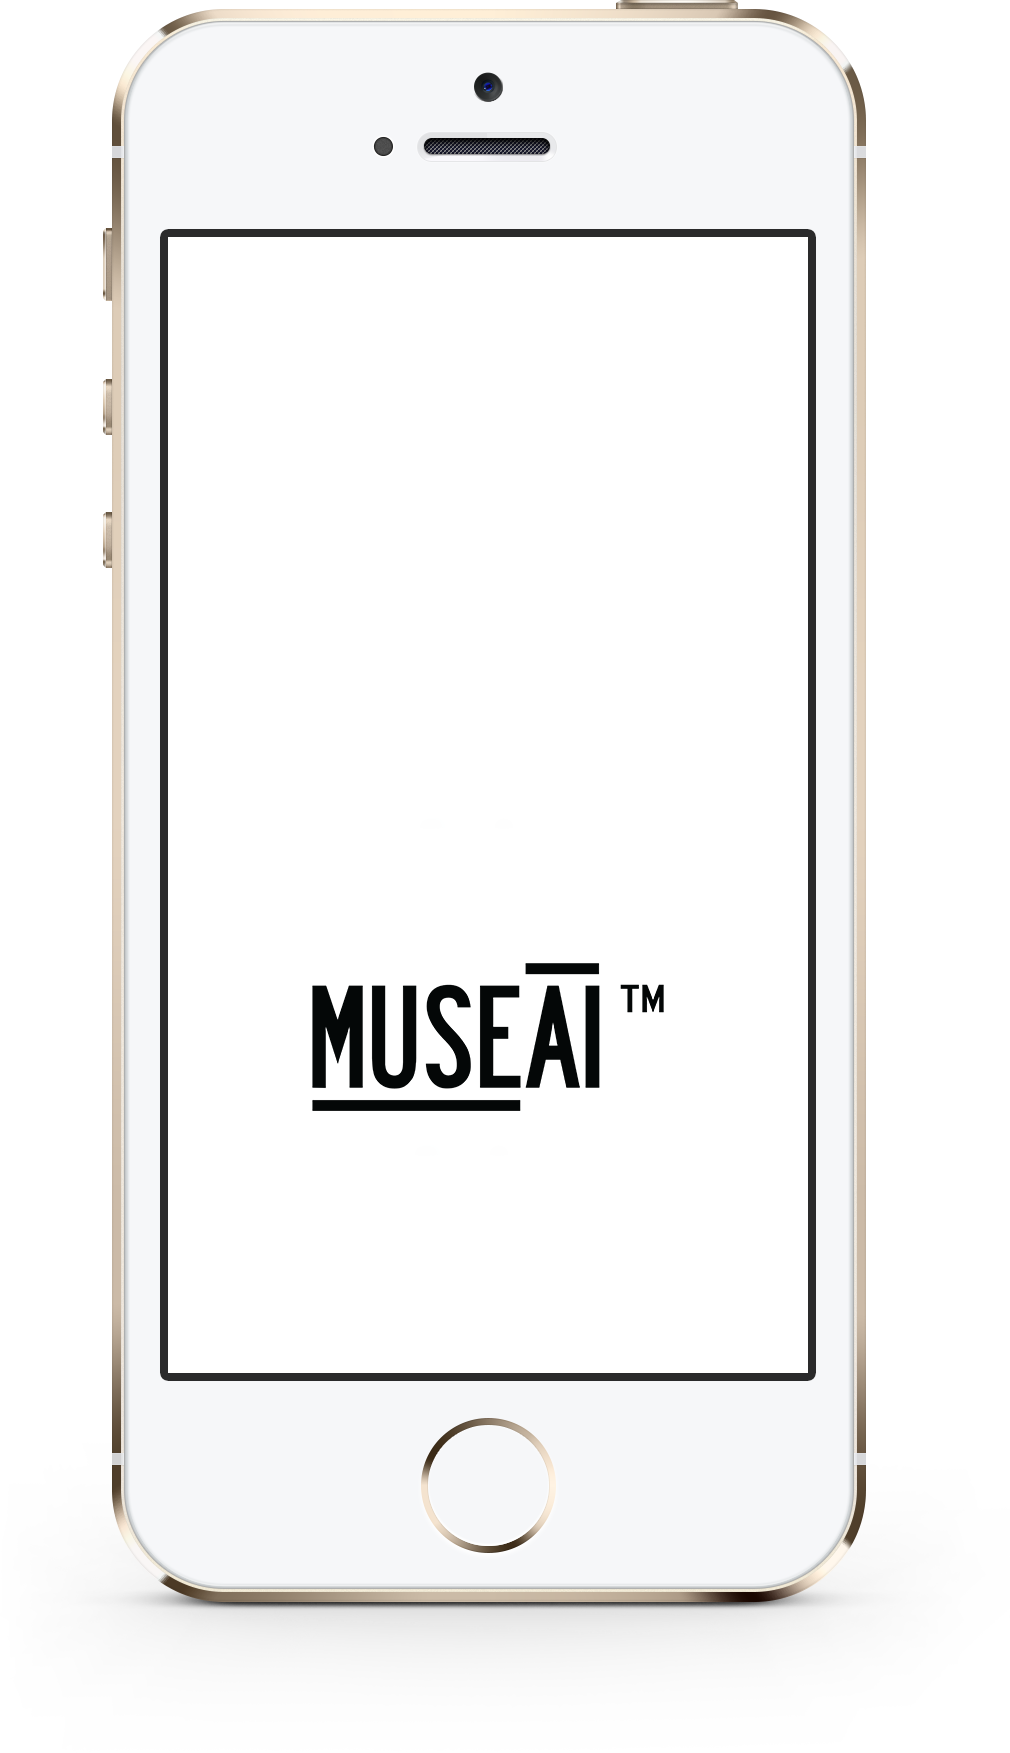 MUSEAI Icon on Phone